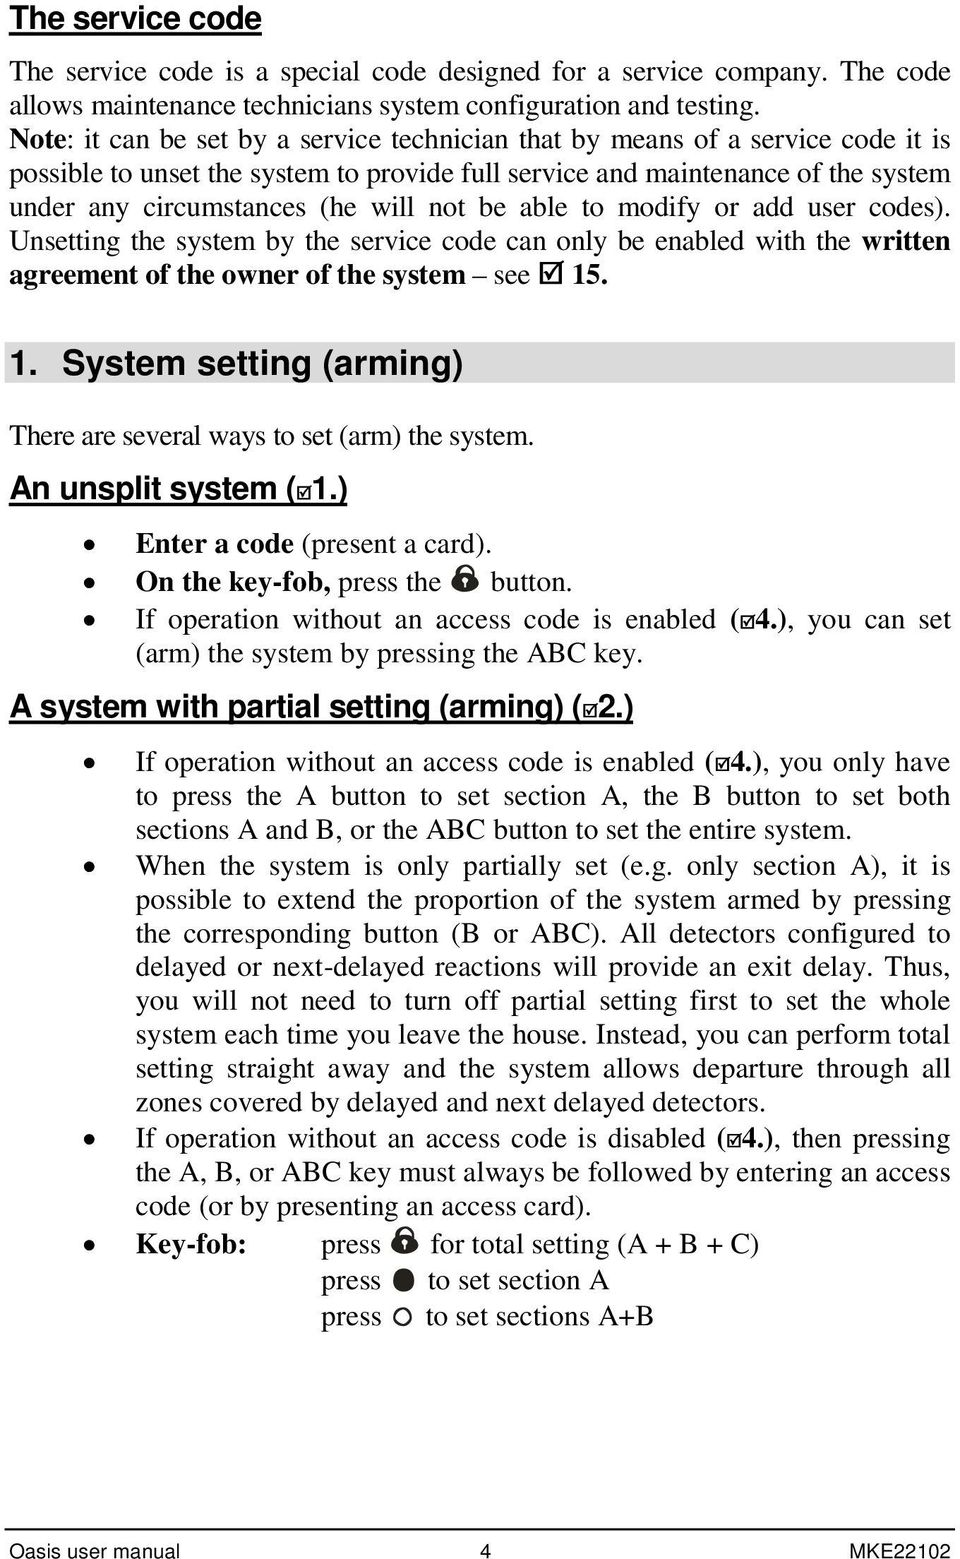 not be able to modify or add user codes). Unsetting the system by the service code can only be enabled with the written agreement of the owner of the system see 15